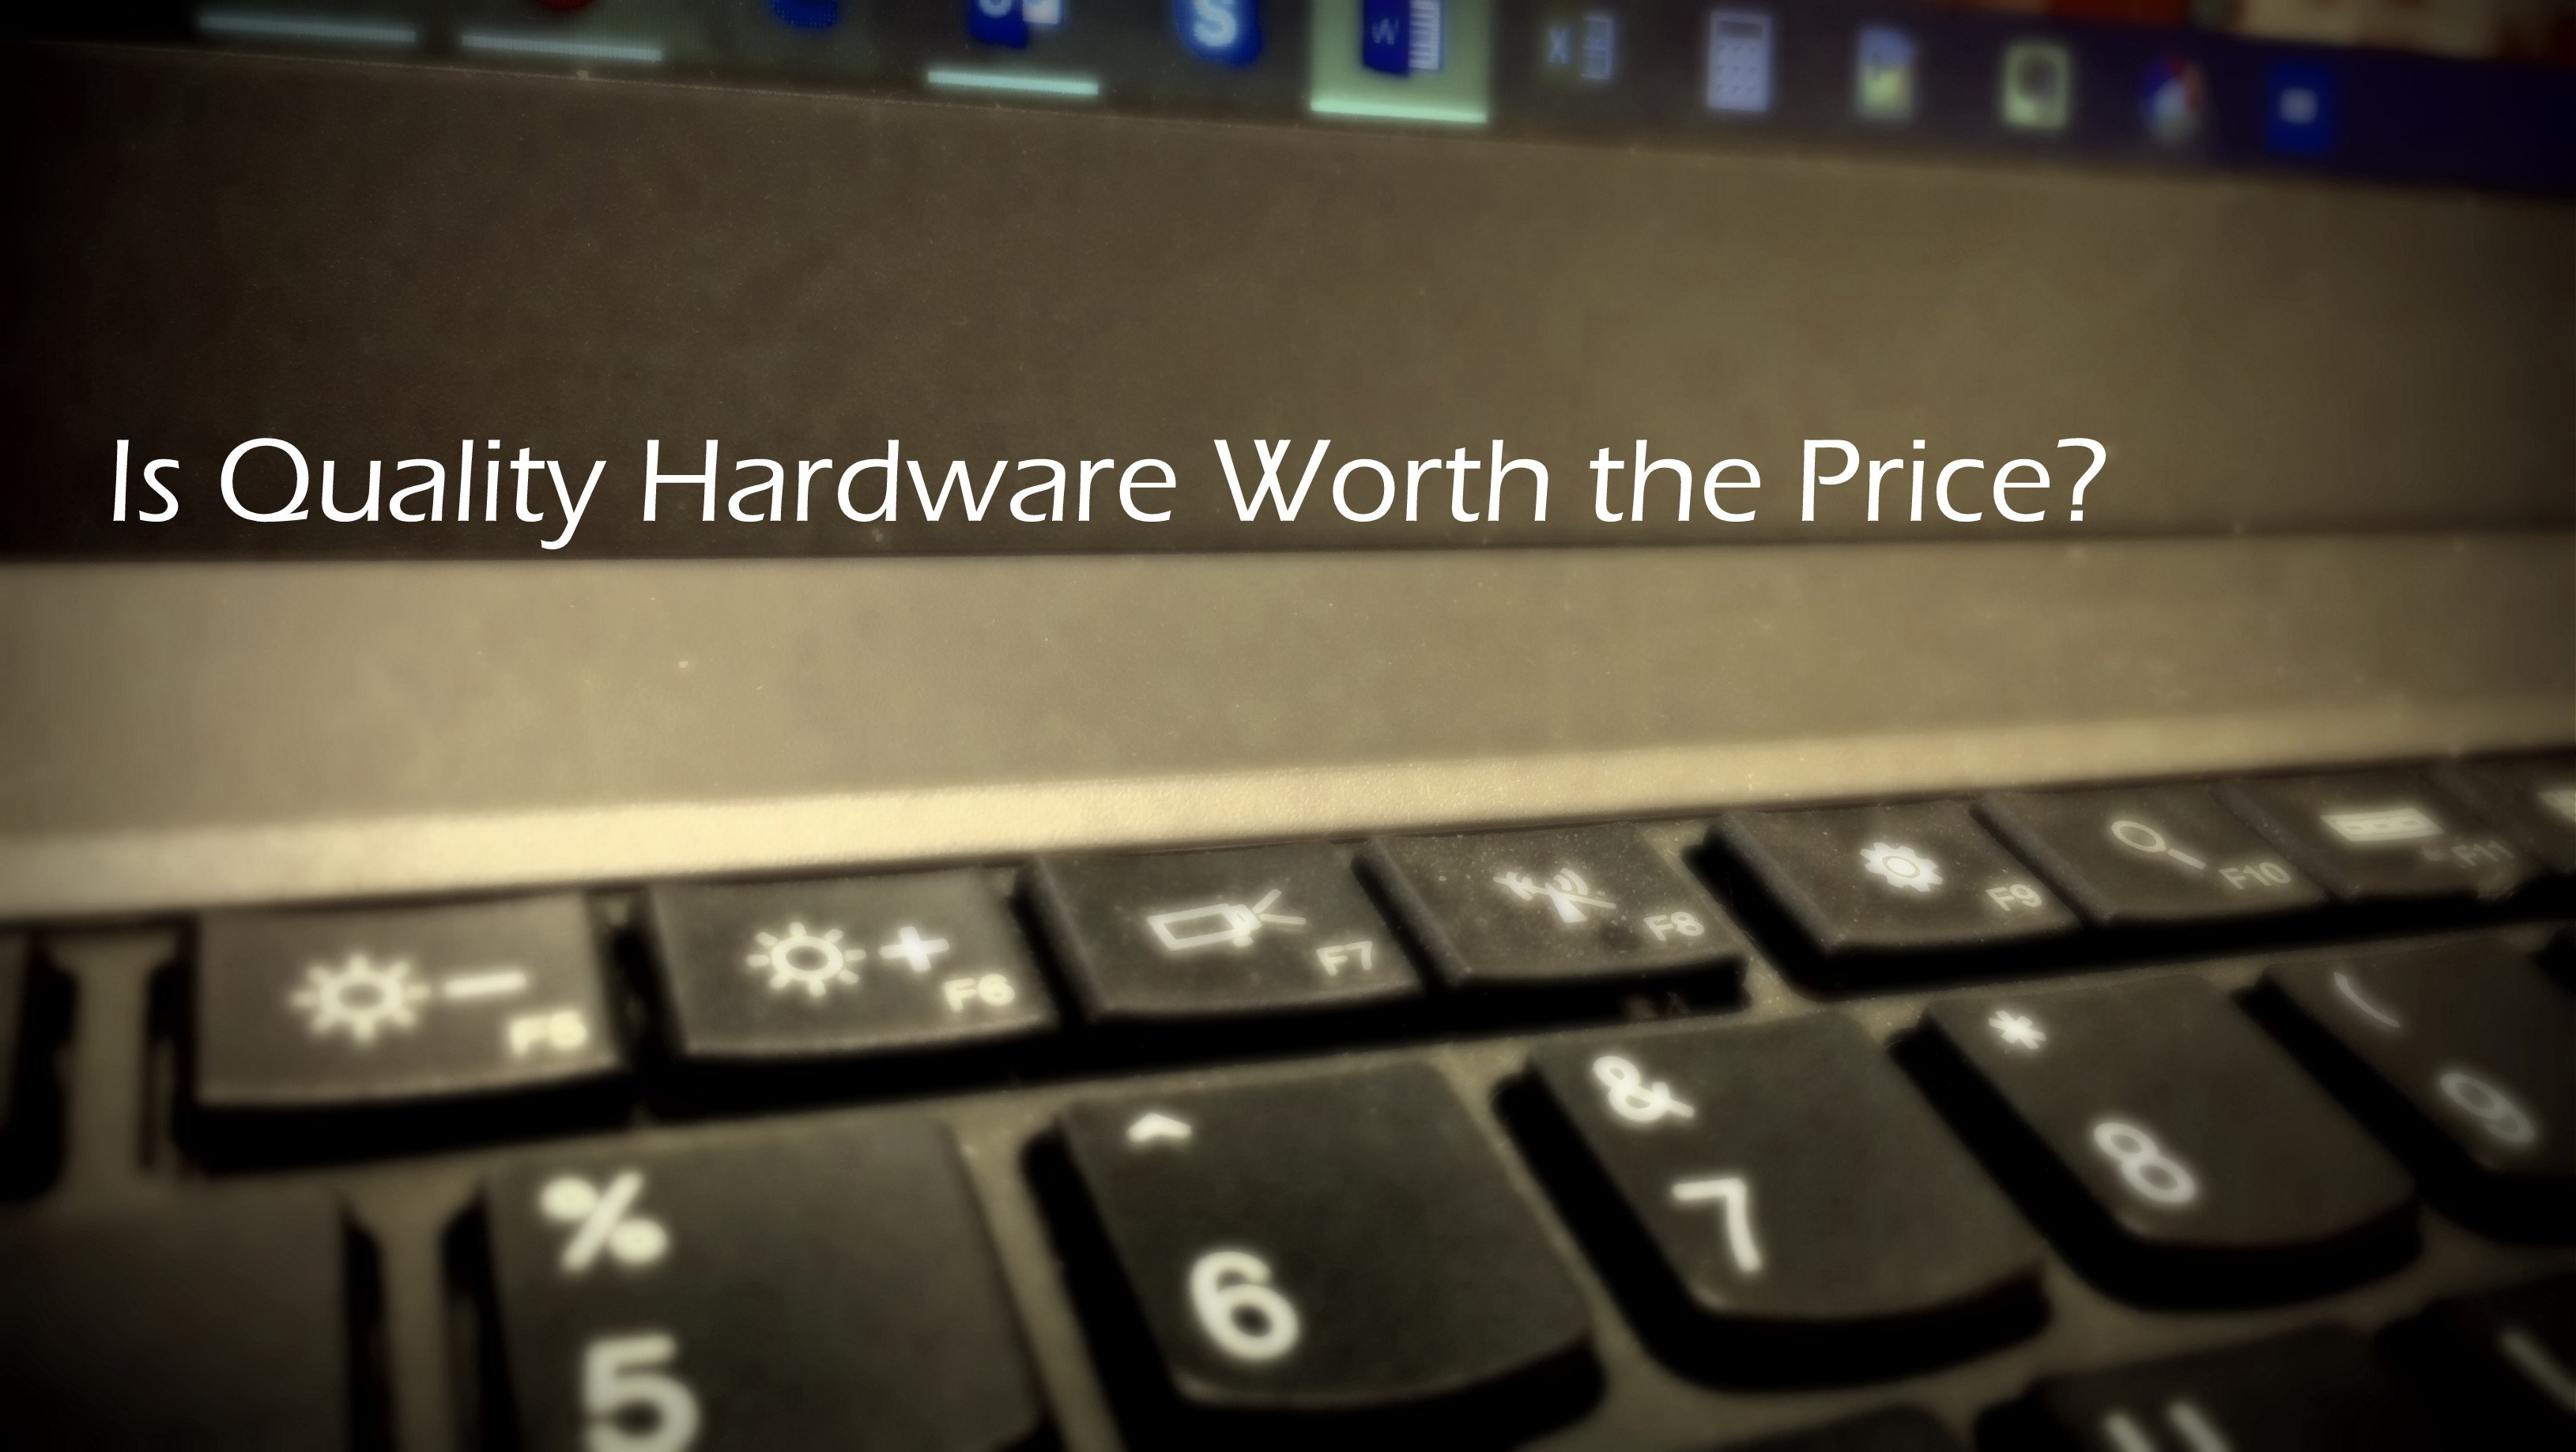 quality hardware keyboard and windows 10